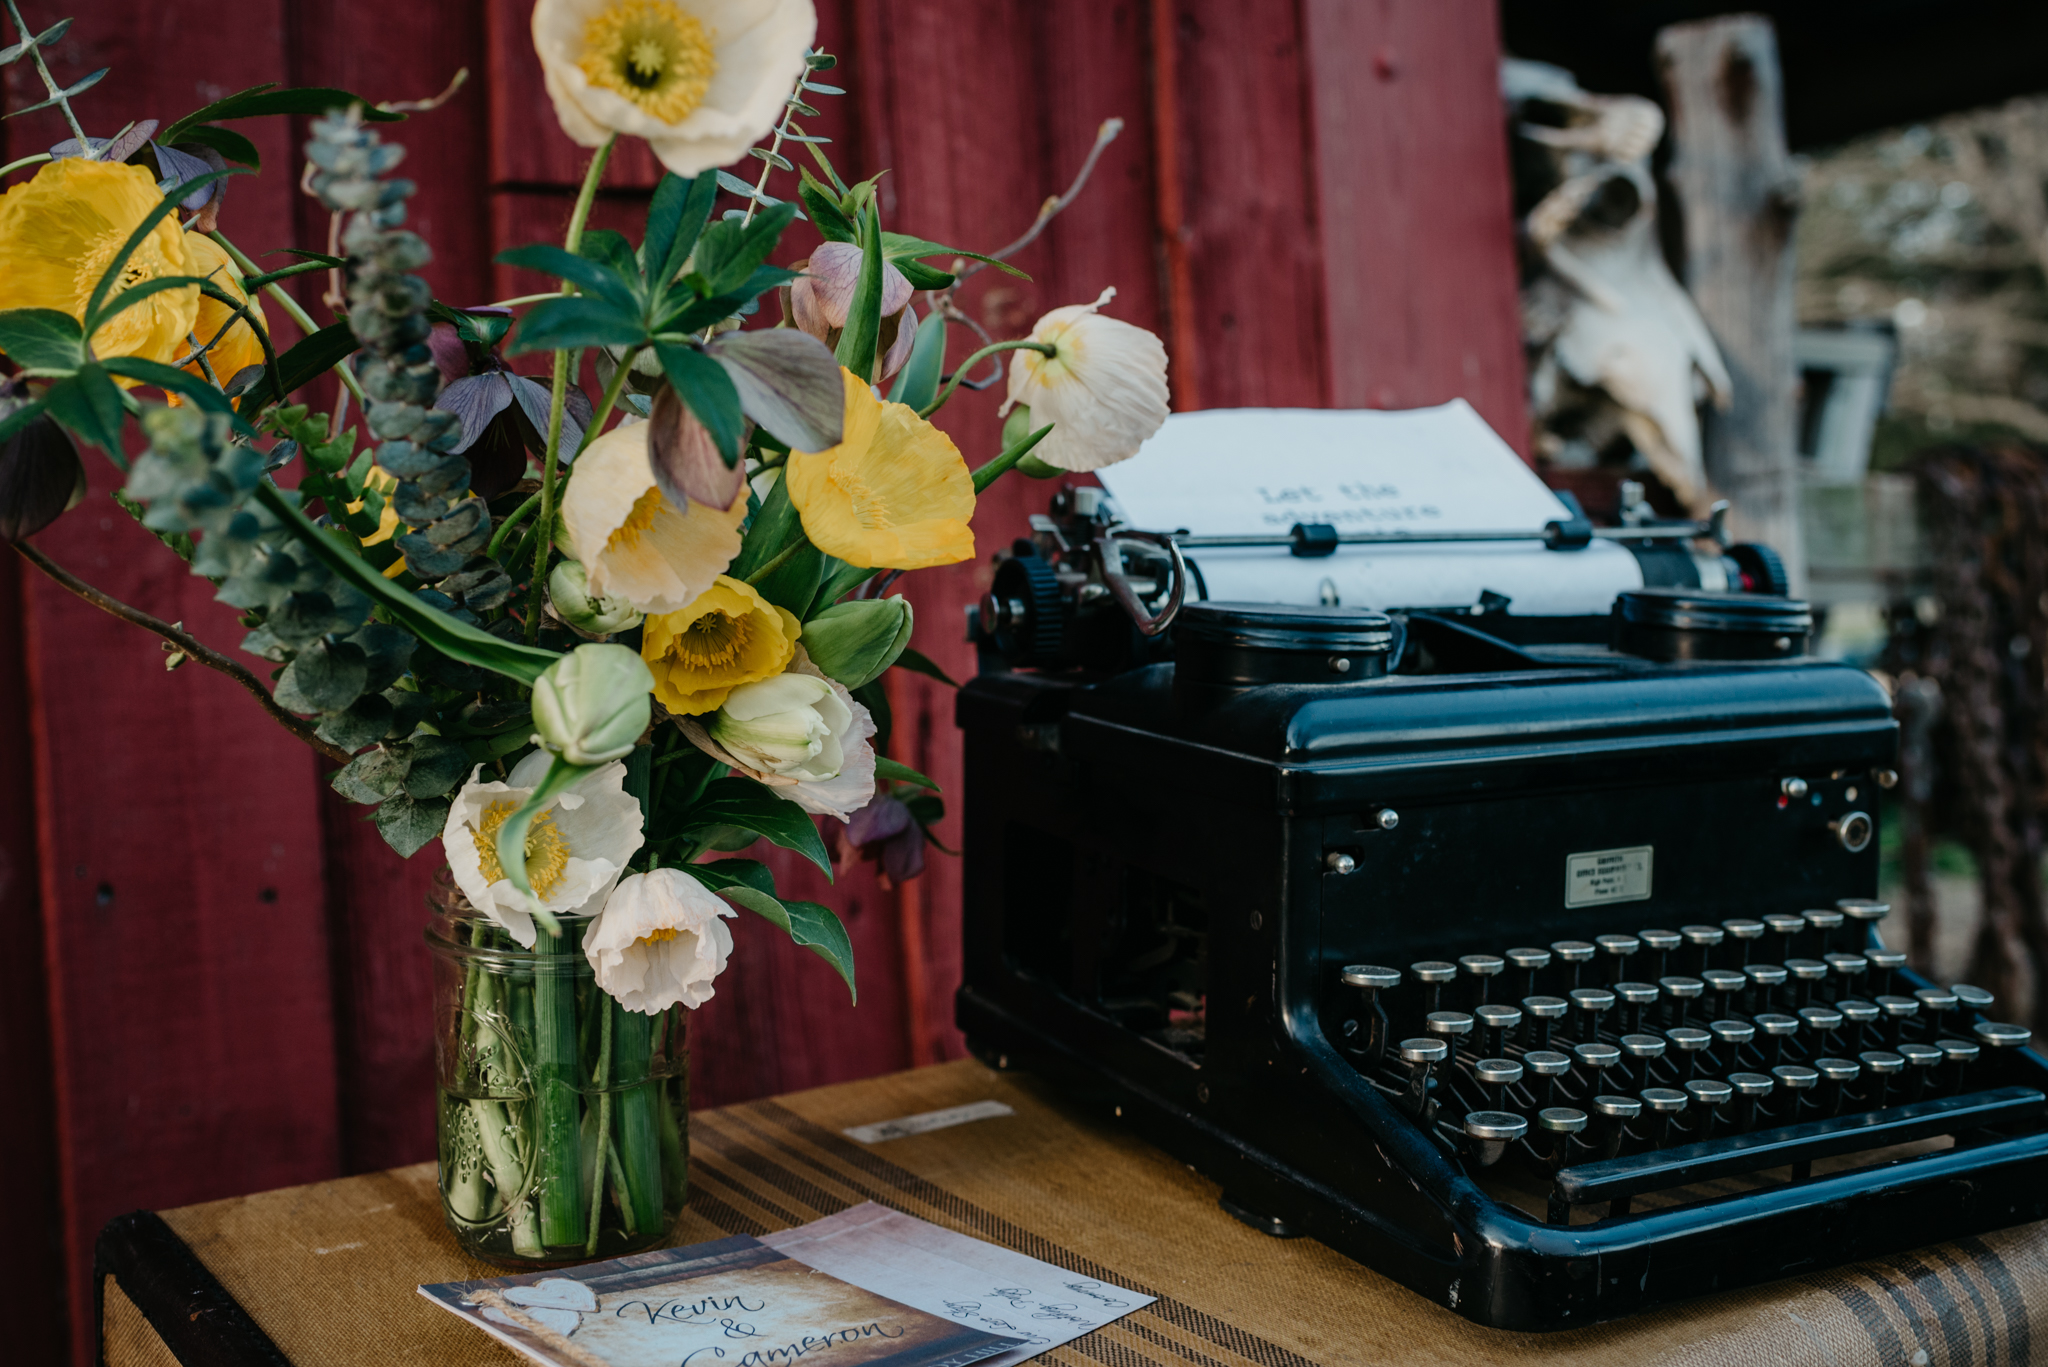 The typewriter, flowers, and invitations were setup outside in the sunset at the rustic styled engagement session with Rose Trail Images at Windy Hill Farm near Raleigh, NC.